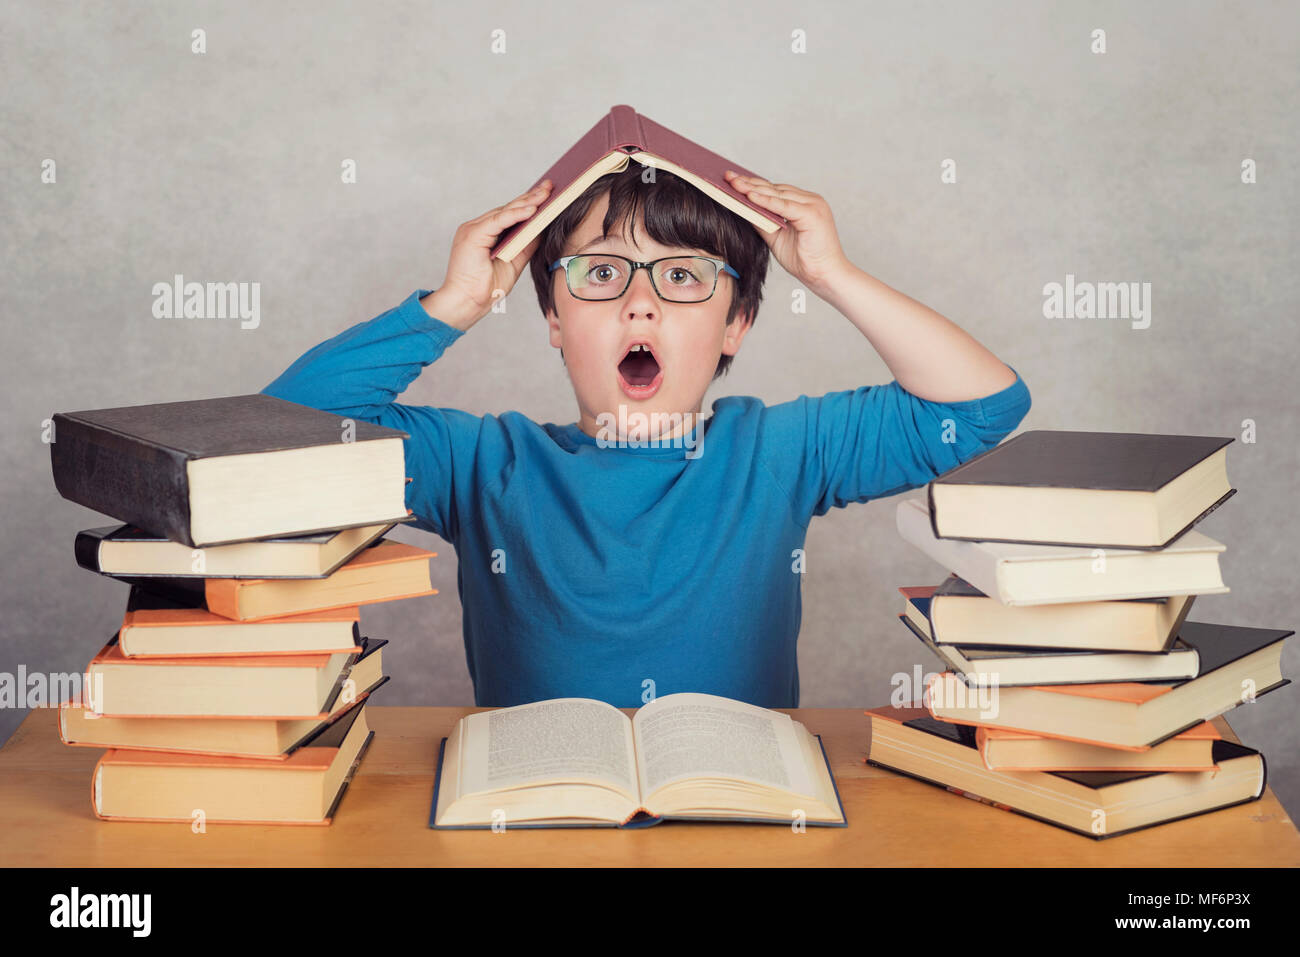 surprised boy with books on a table - Stock Image